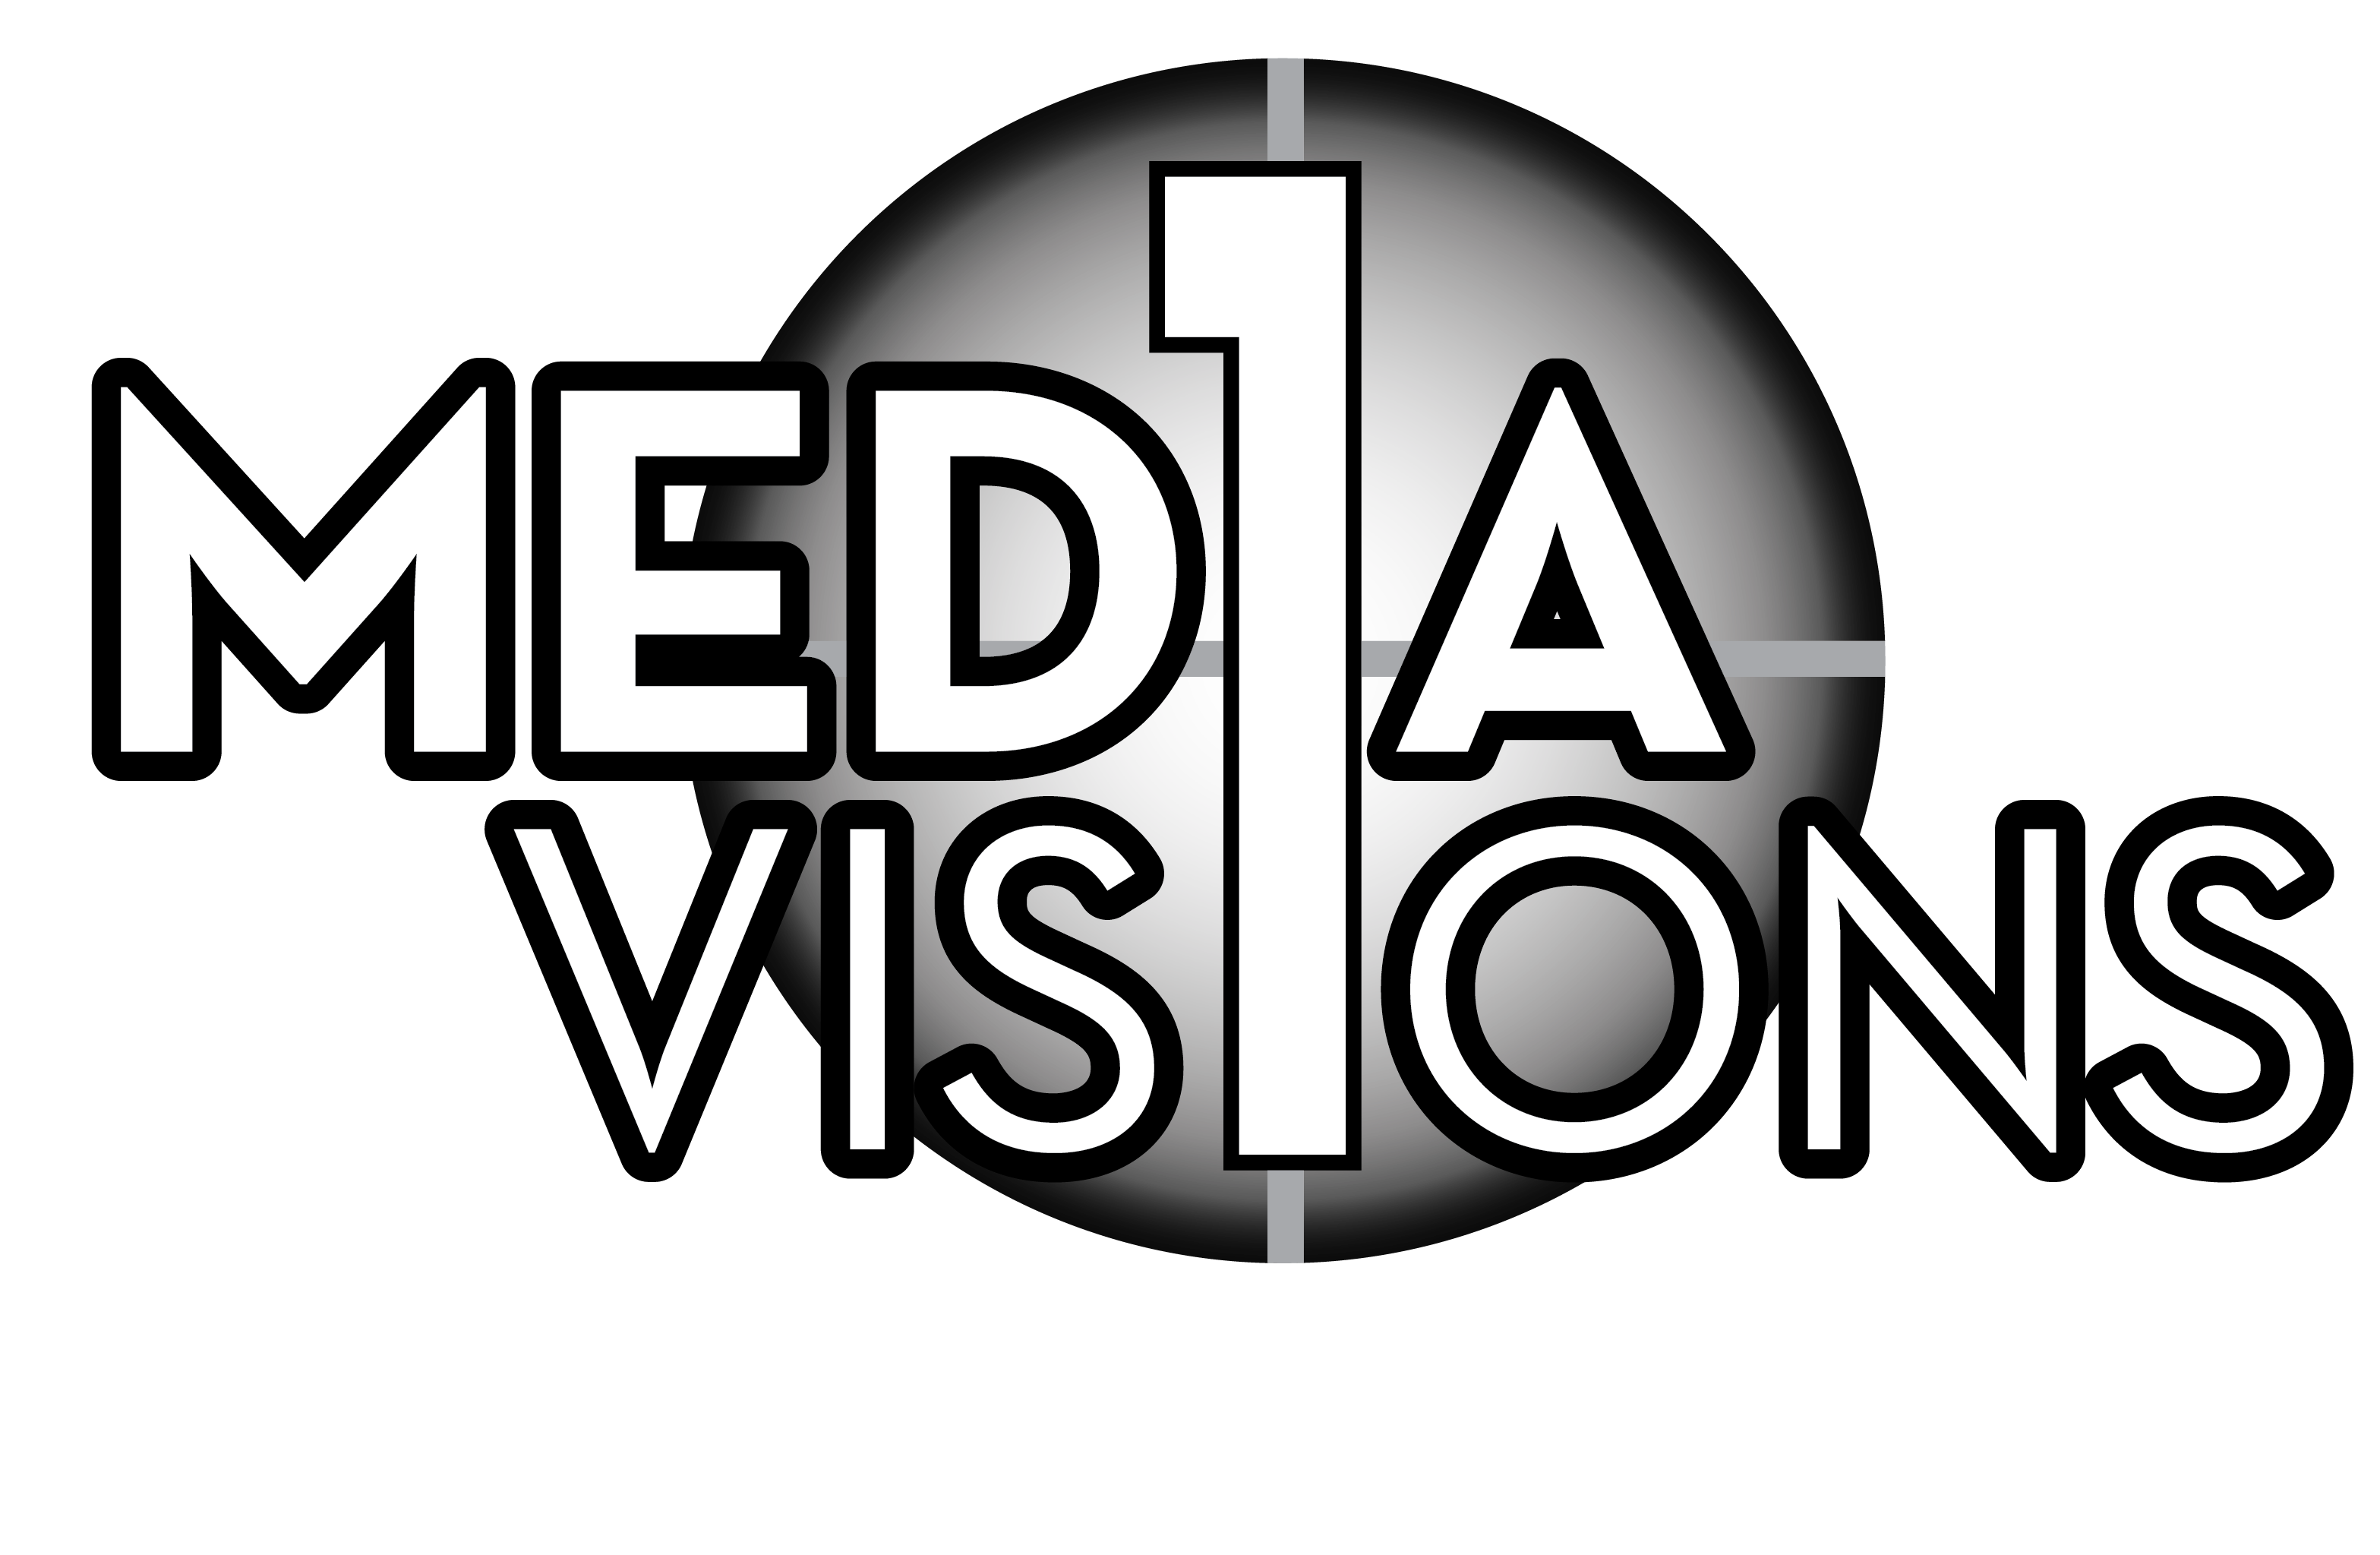 Media One Visions